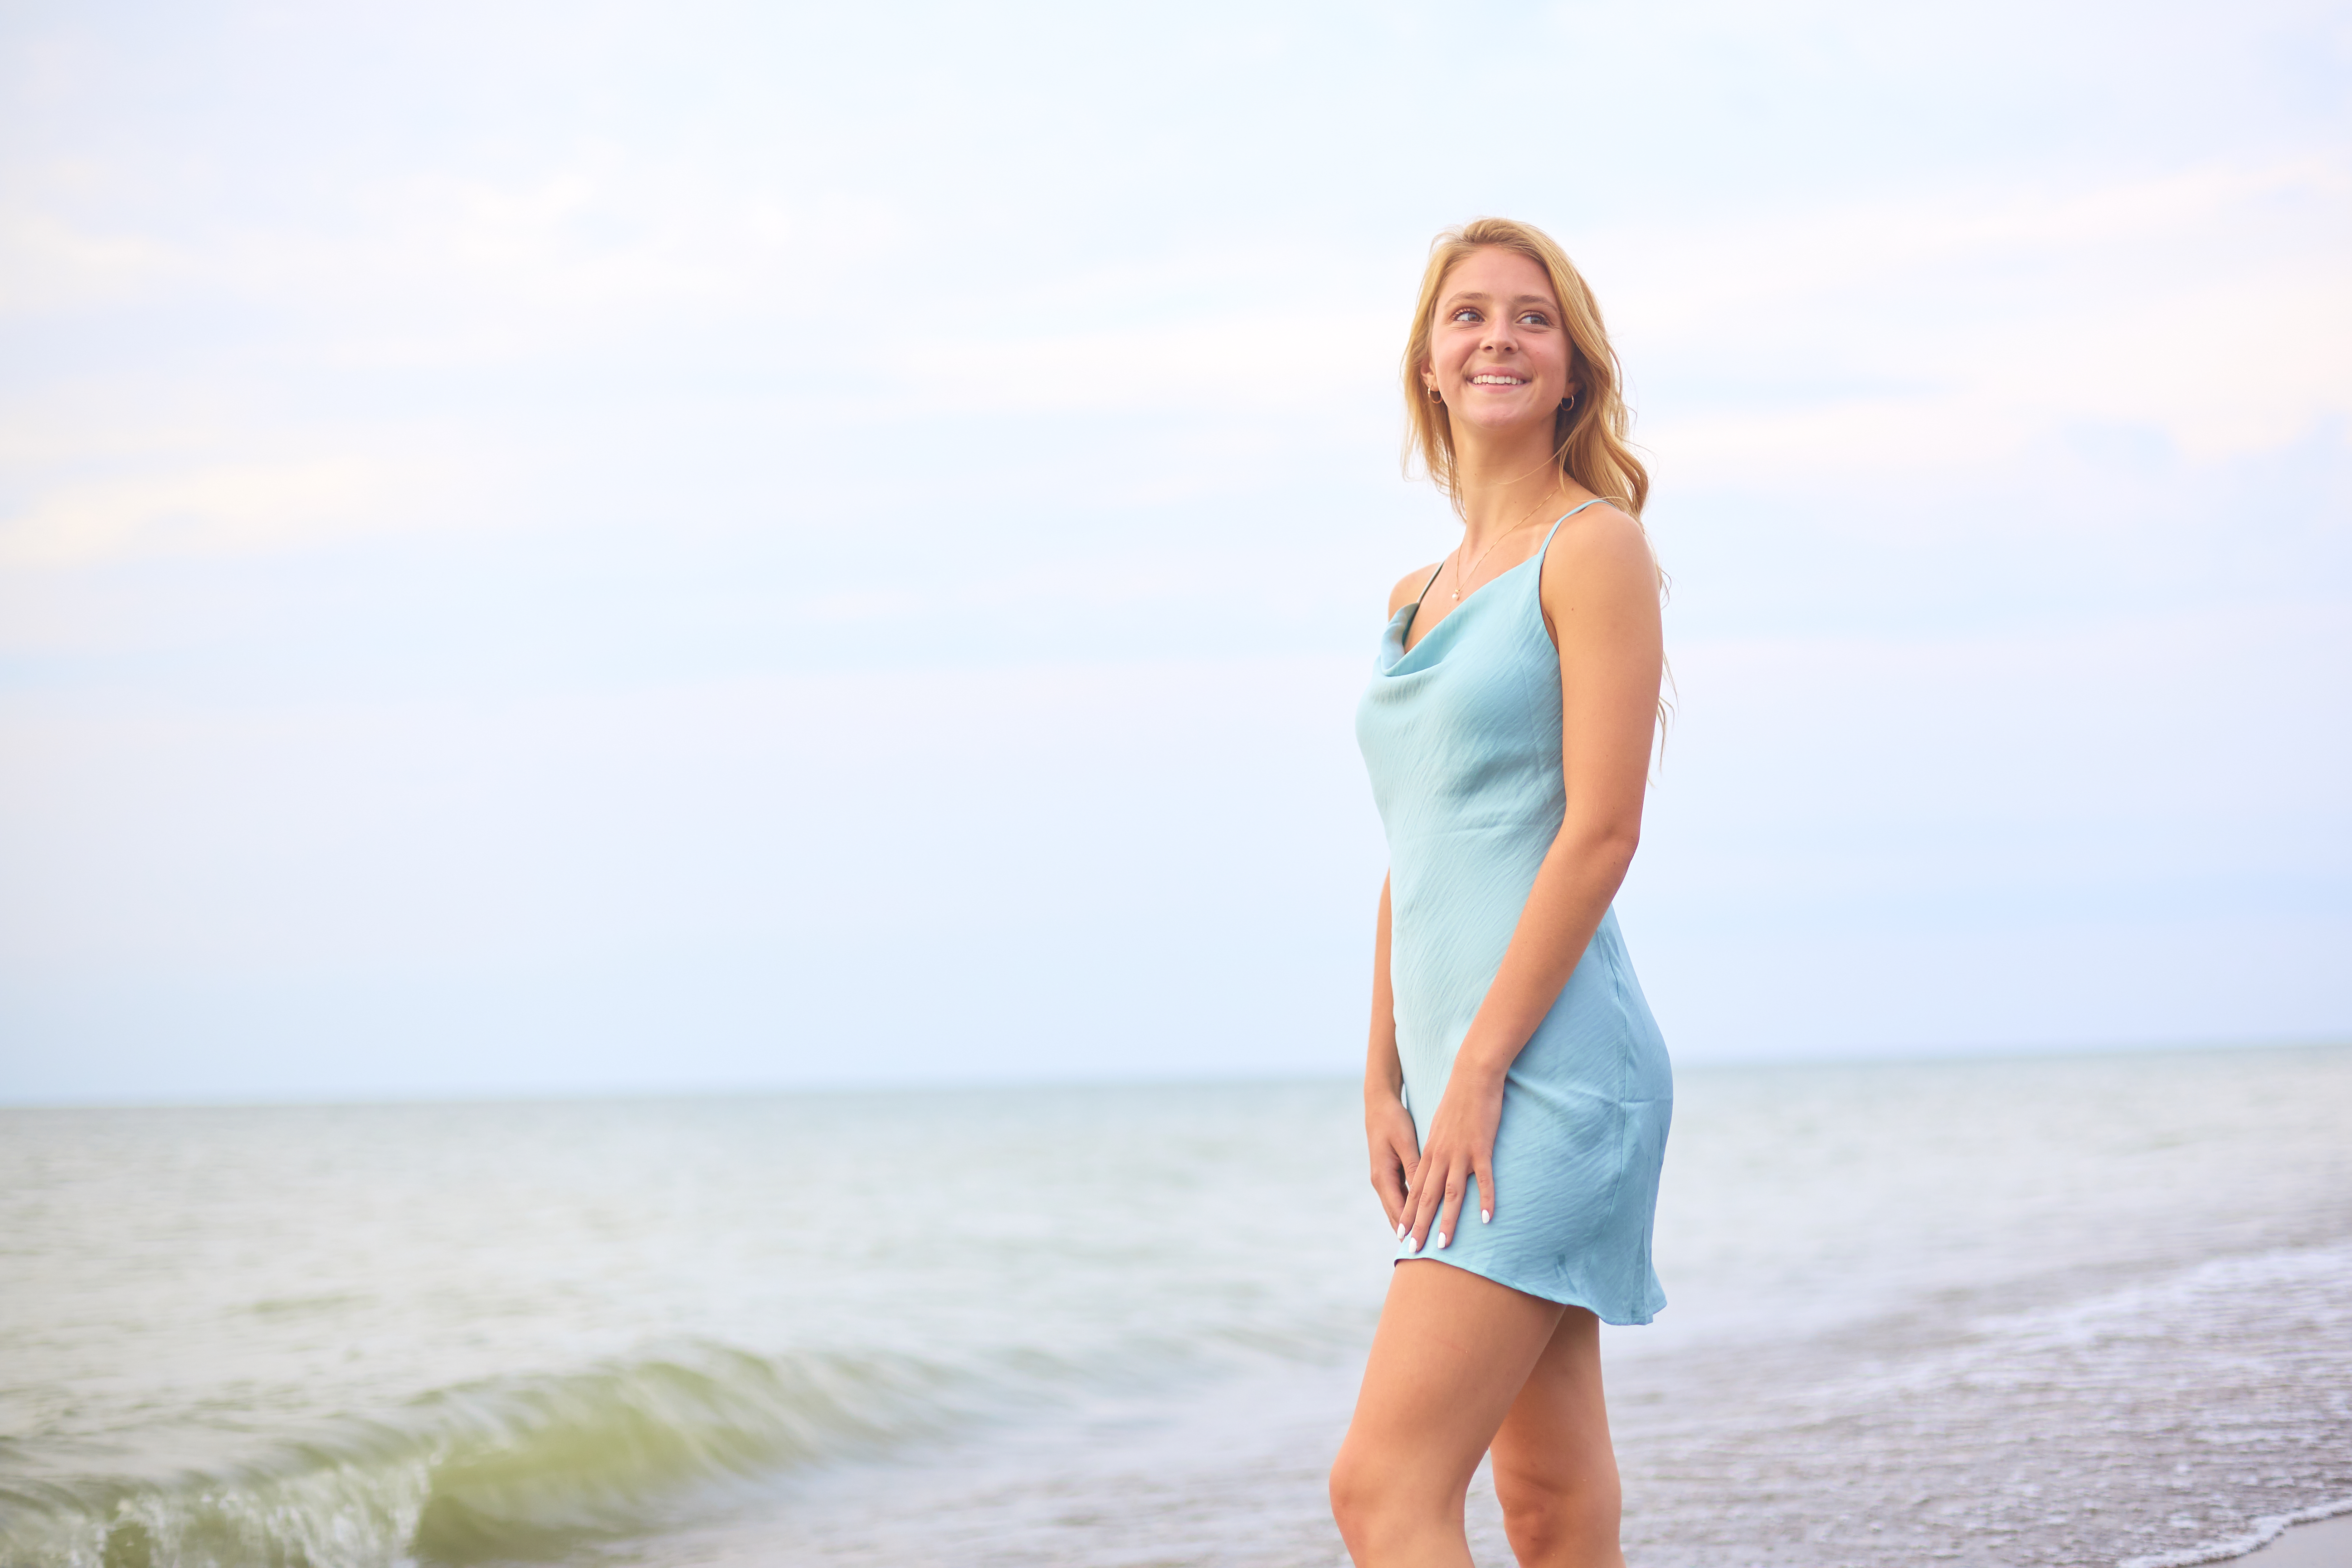 Leanna's Lens | Senior photography in front of Lake Erie